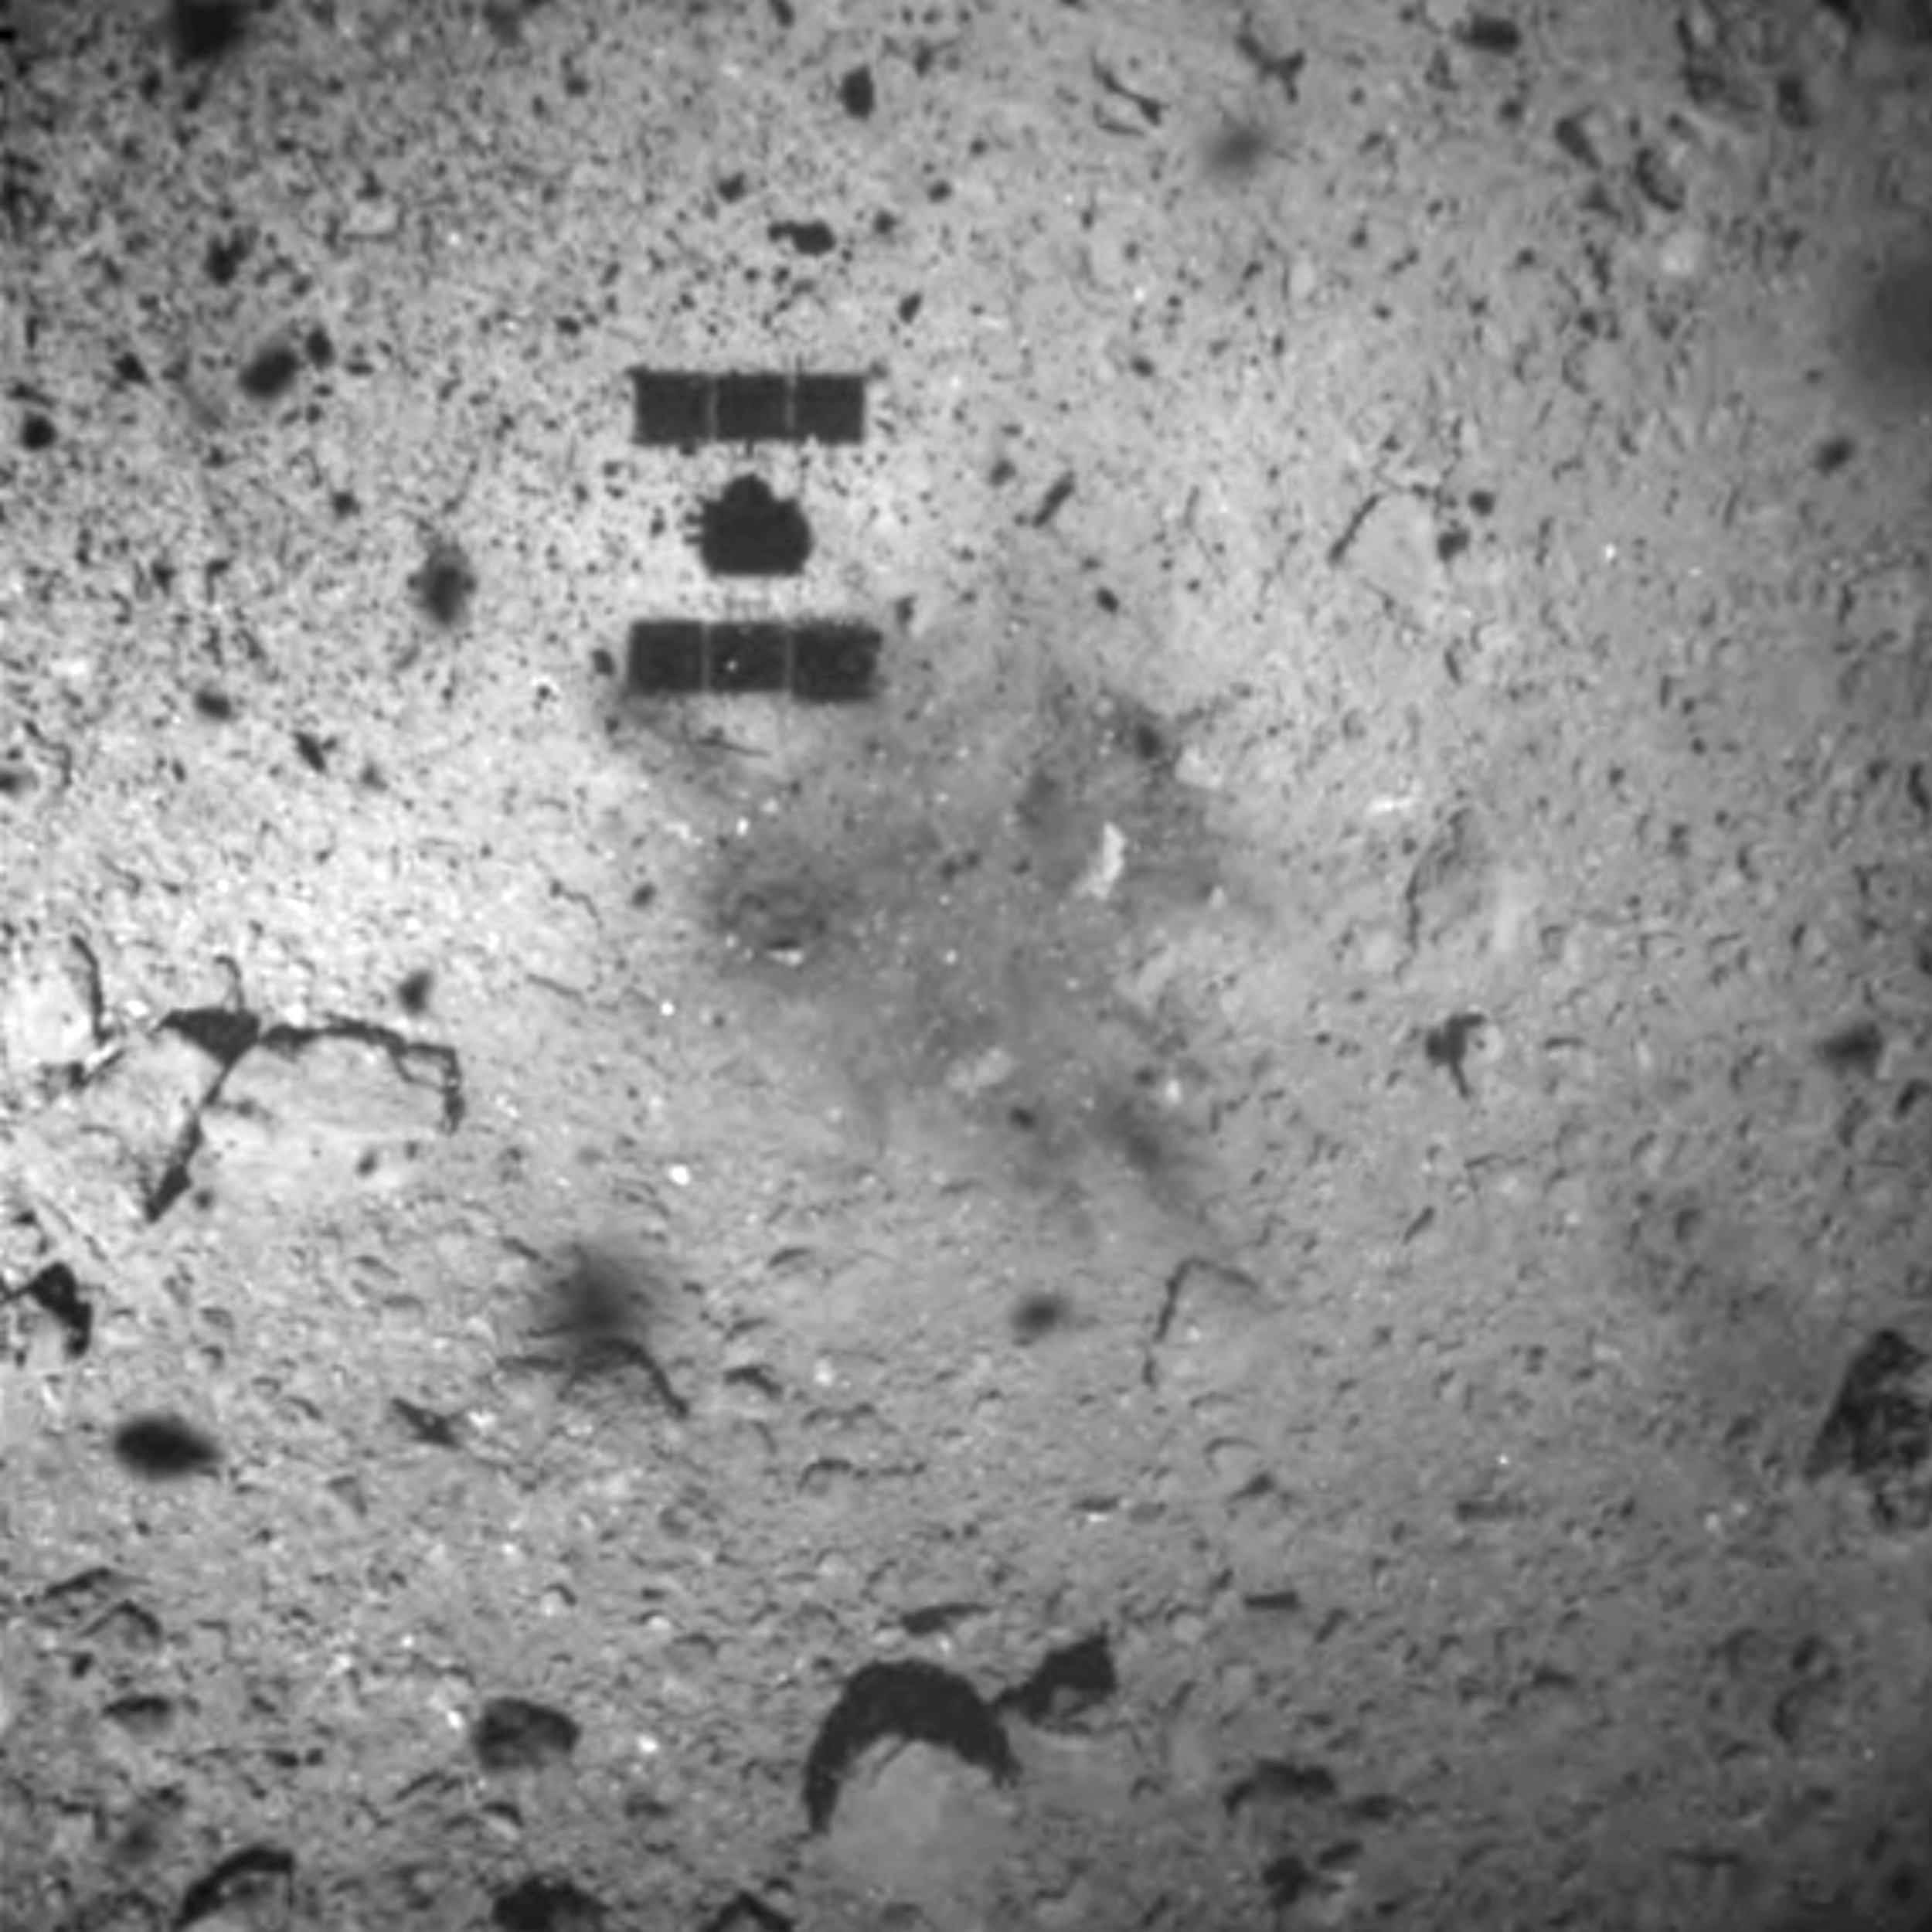 The shadow, centre above, of the Hayabusa2 spacecraft after its successful touchdown on the asteroid Ryugu